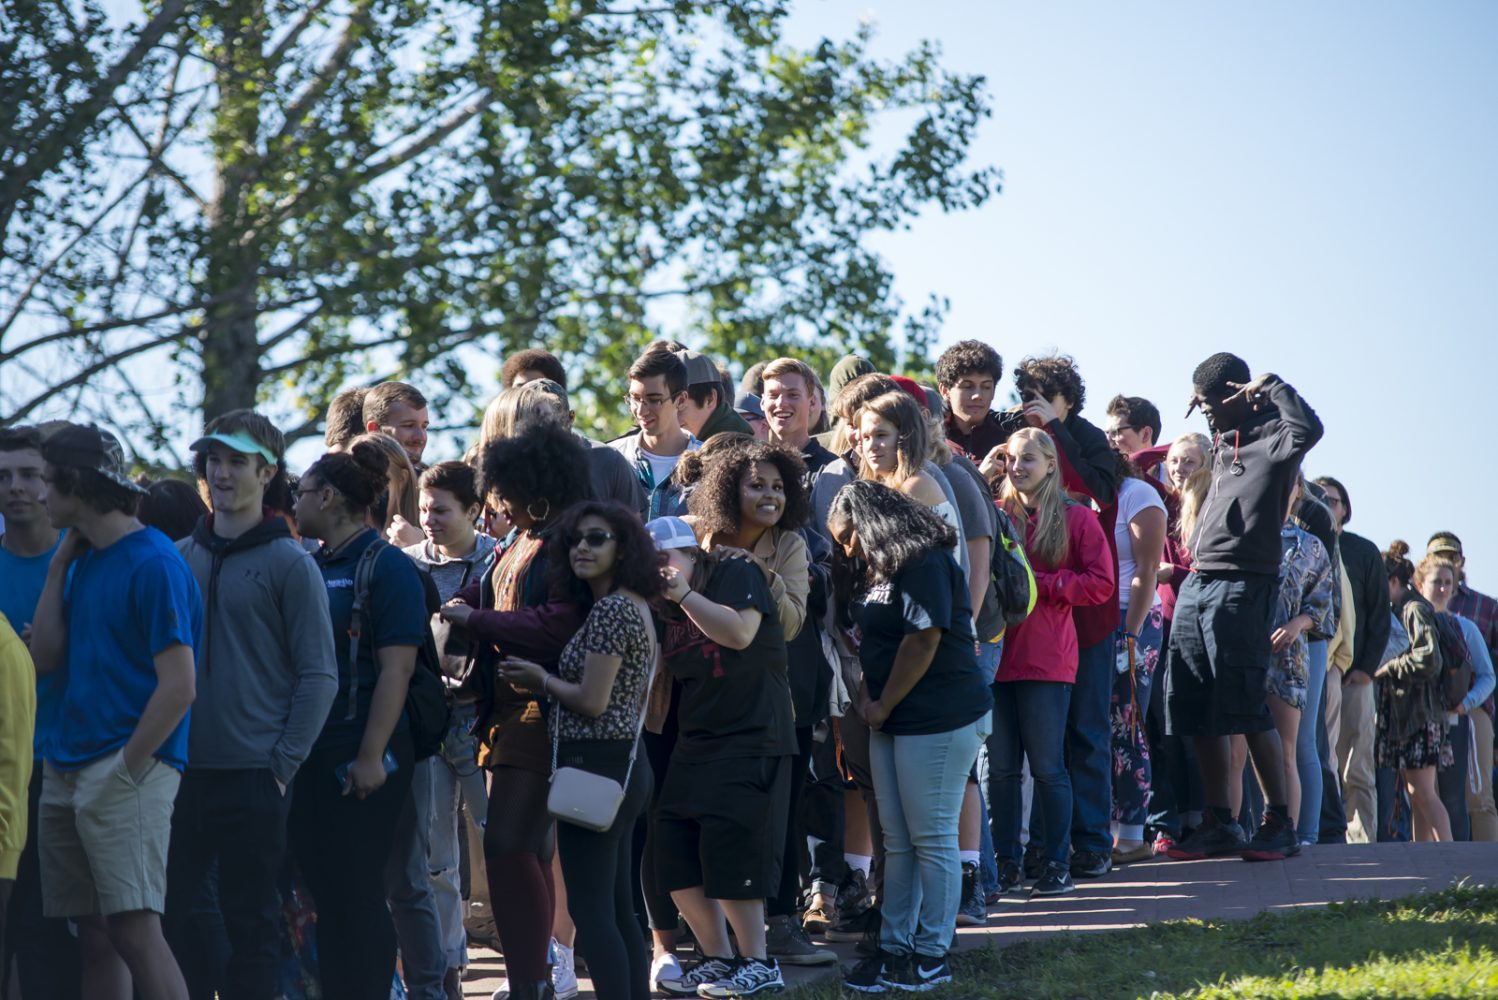 Northland College students line up for convocation